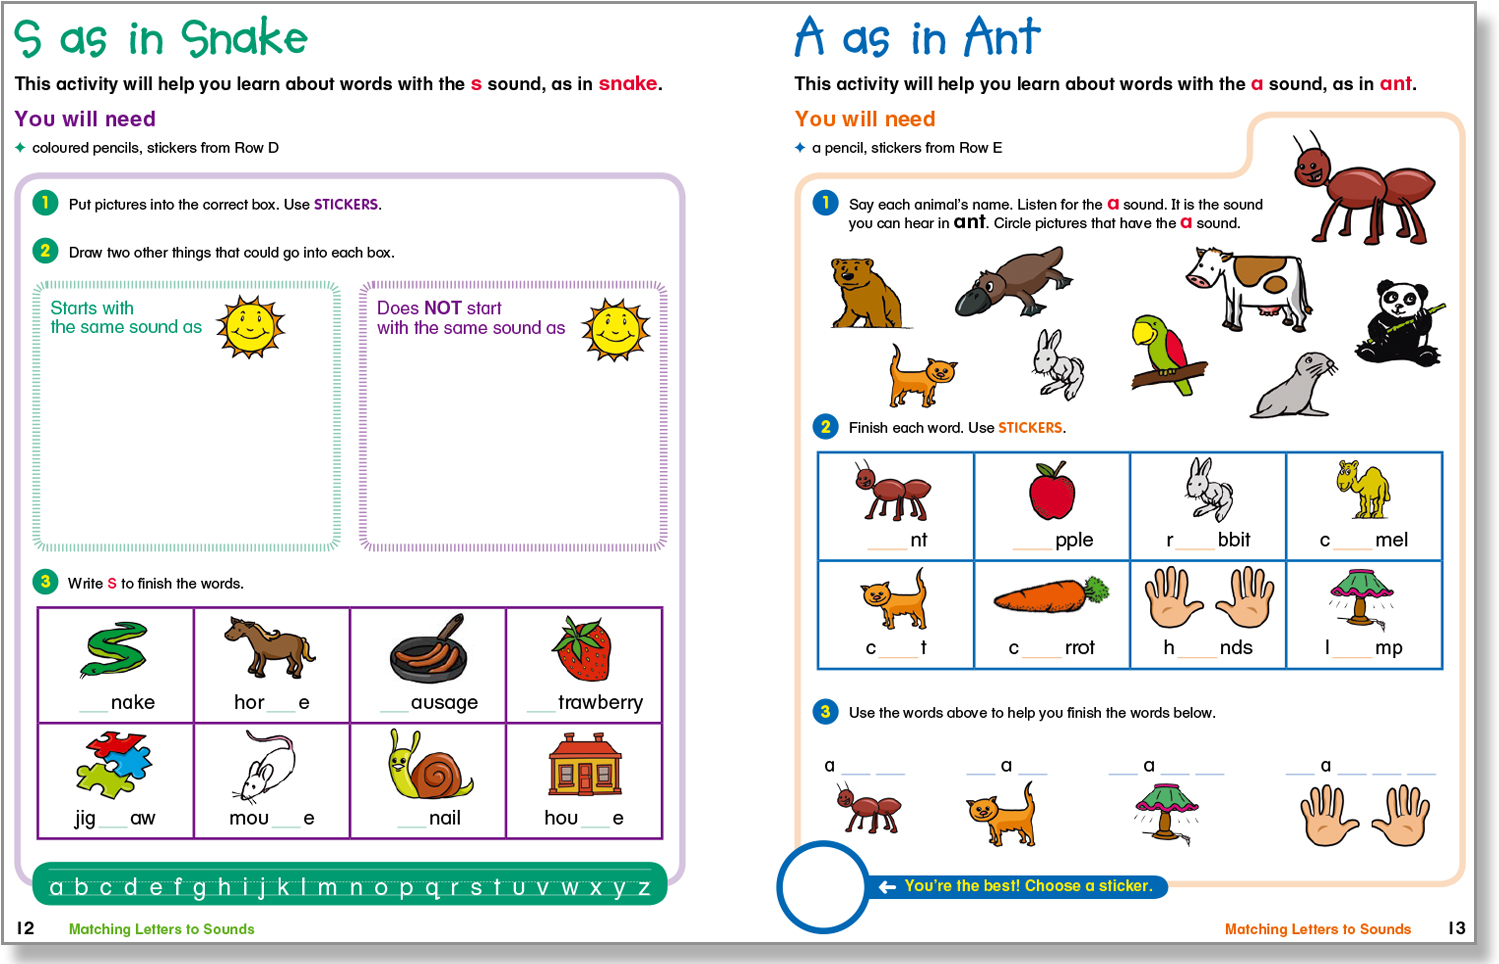 Sample spread from Word Study level 1